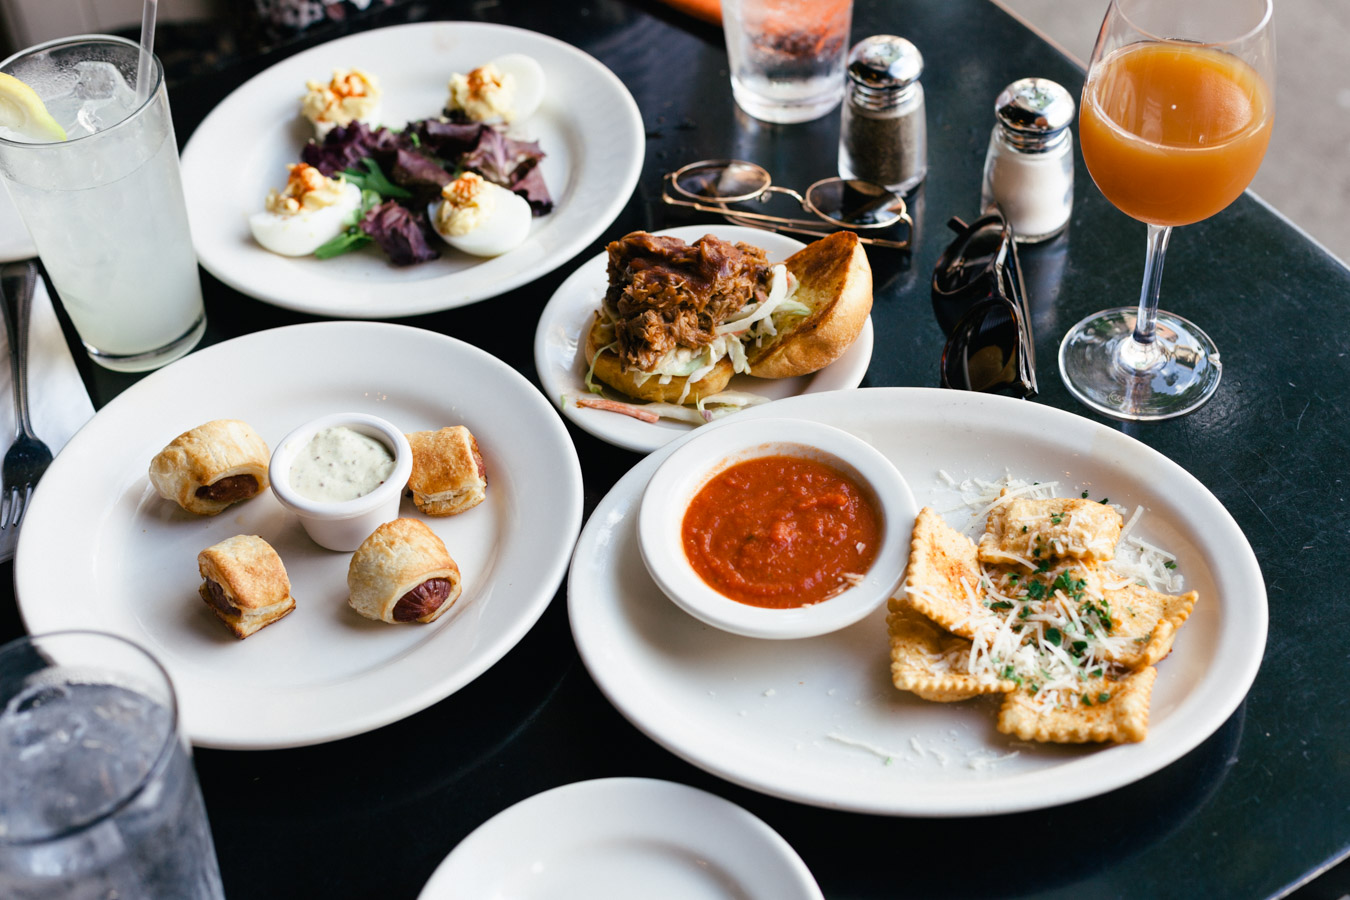 We had the tapas-style late lunch. The sizeis perfect to share and try many dishes.